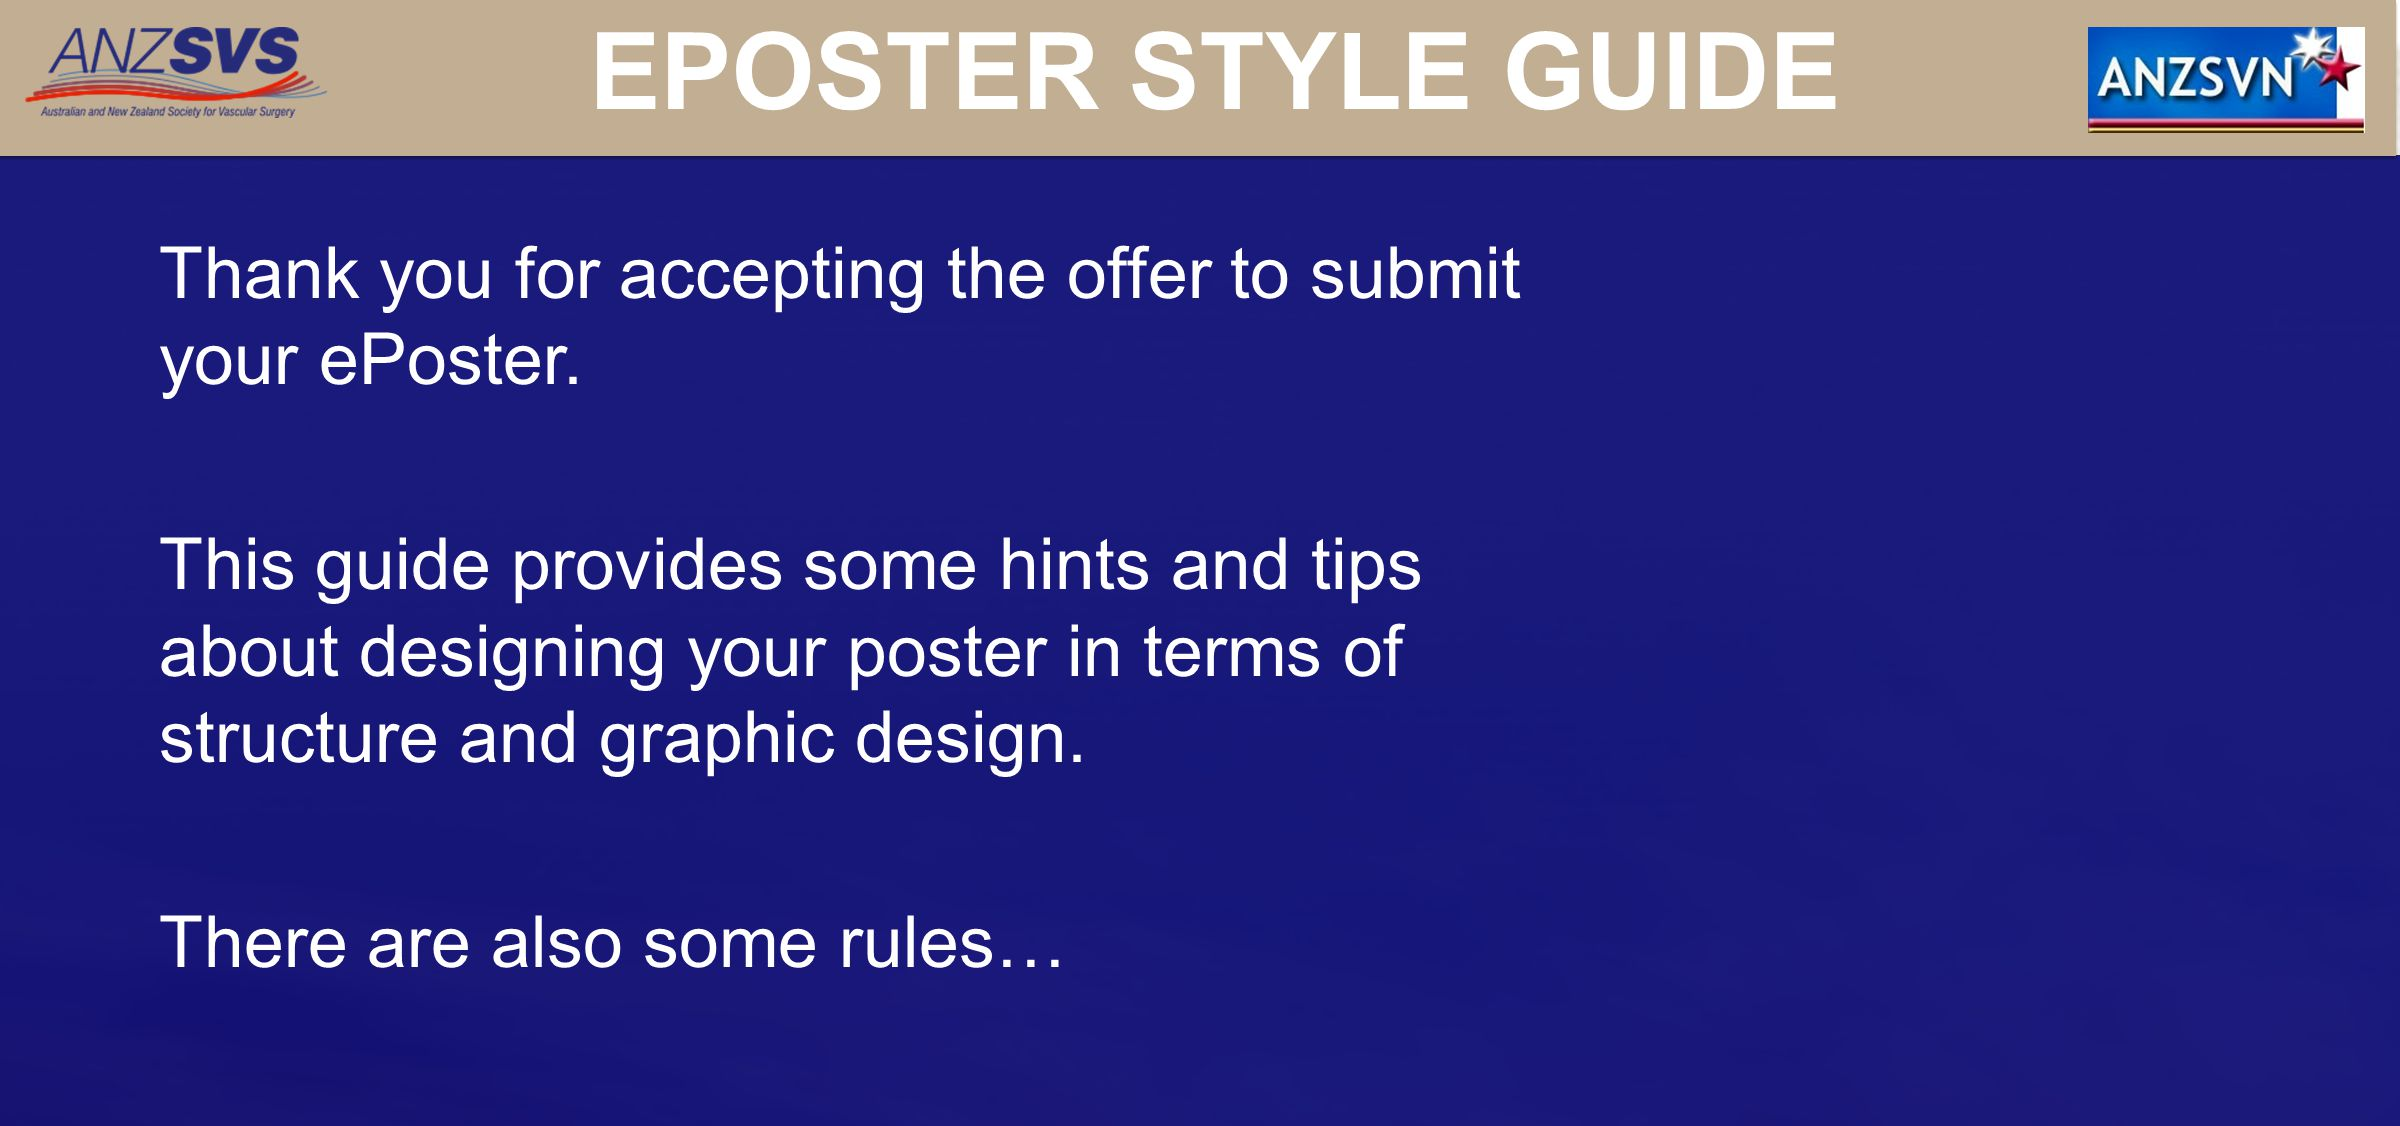 EPOSTER STYLE GUIDE THE RULES: You must submit your ePoster using the template we've made available for you to download.